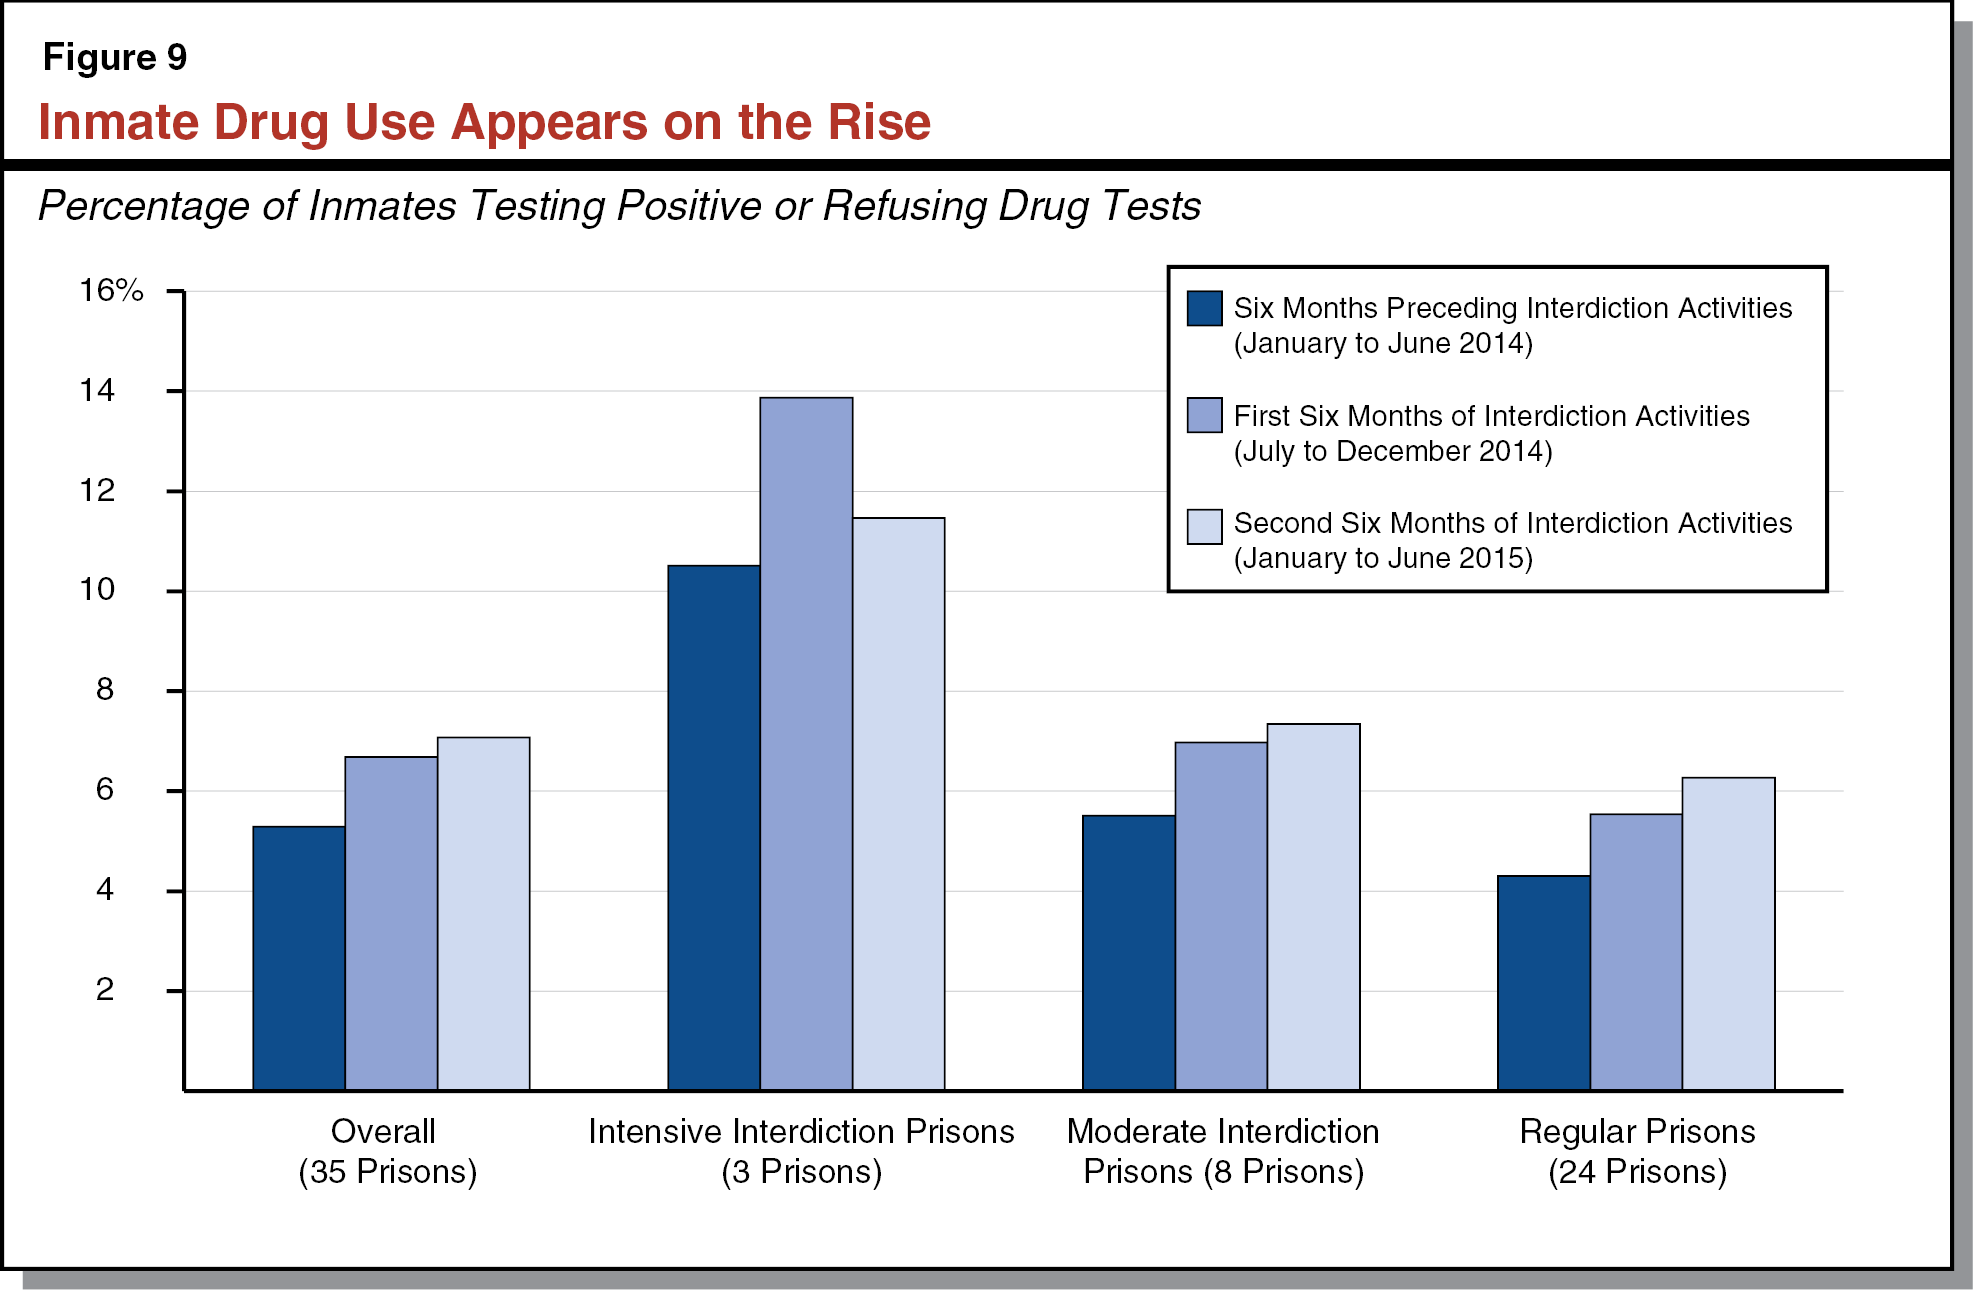 Figure 9 - Inmate Drug Use Appears on the Rise